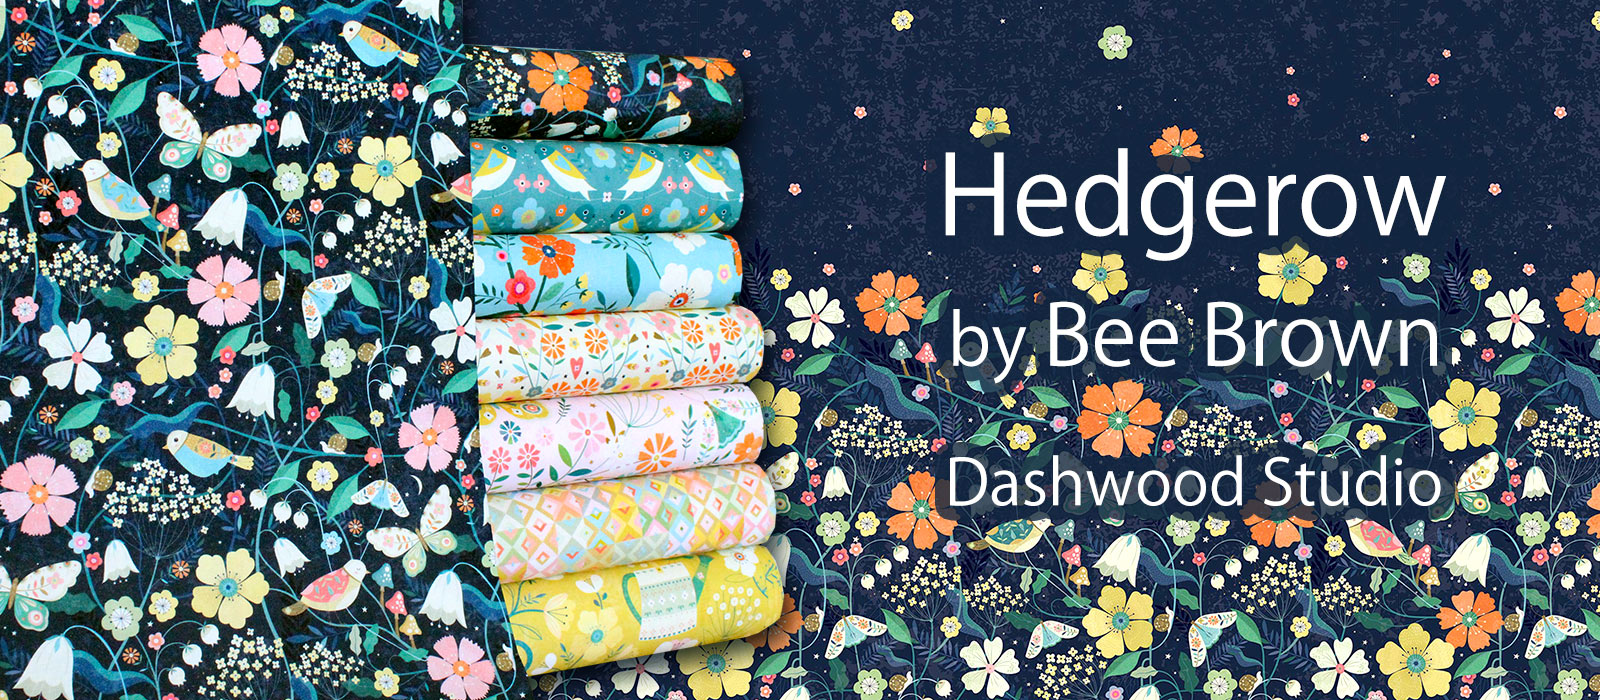 Dashwood Studio Hedgerow Collection by Bee Brown